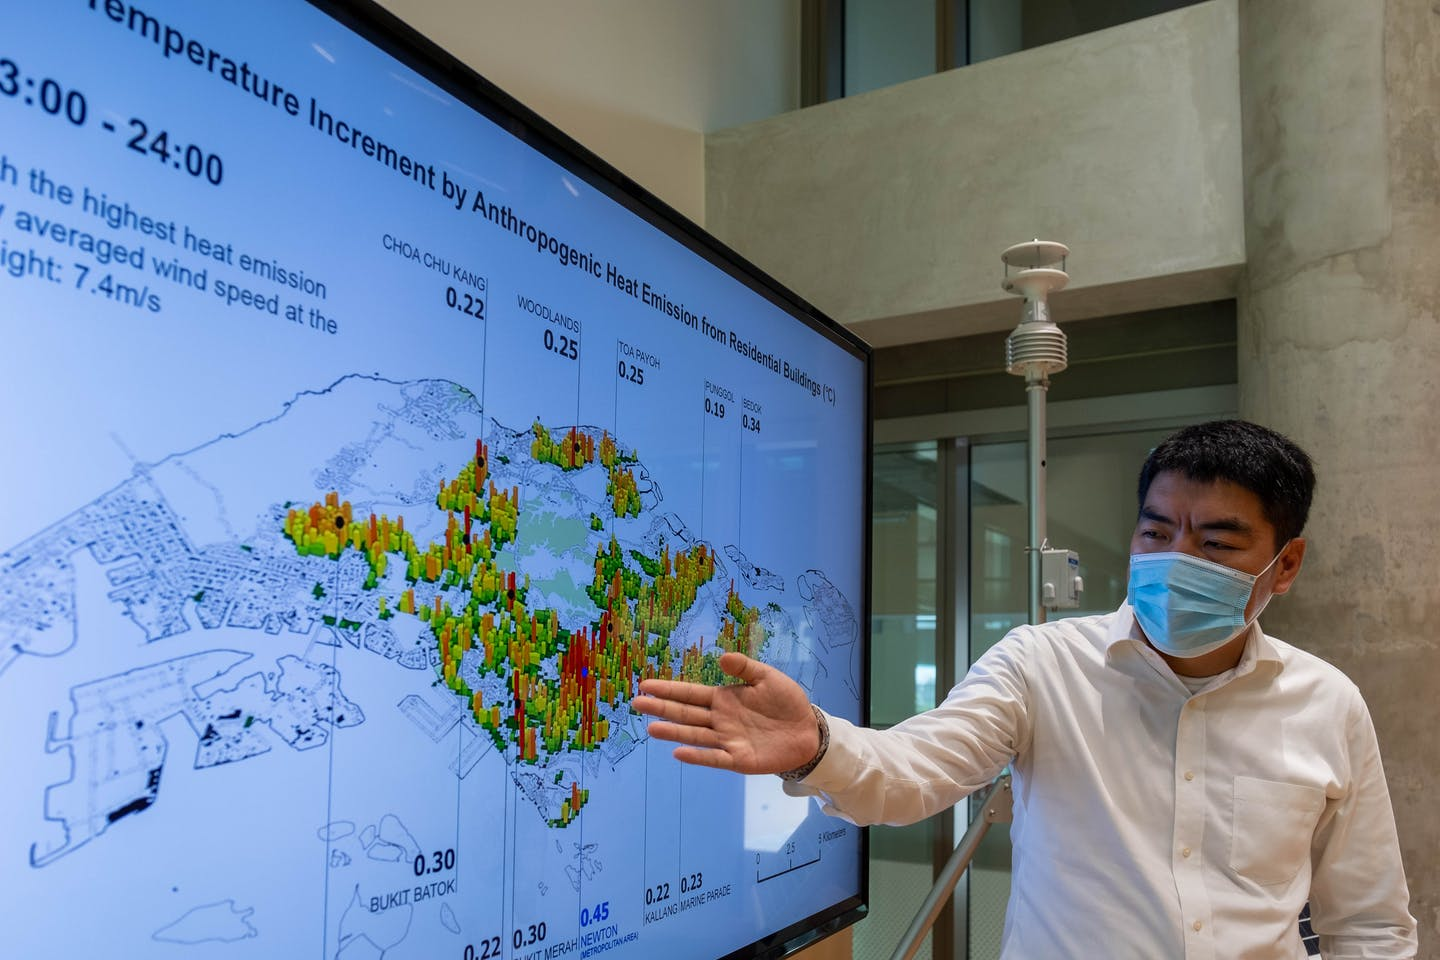 NUS researchers develop new urban planning GIS tool to improve urban climate resilience